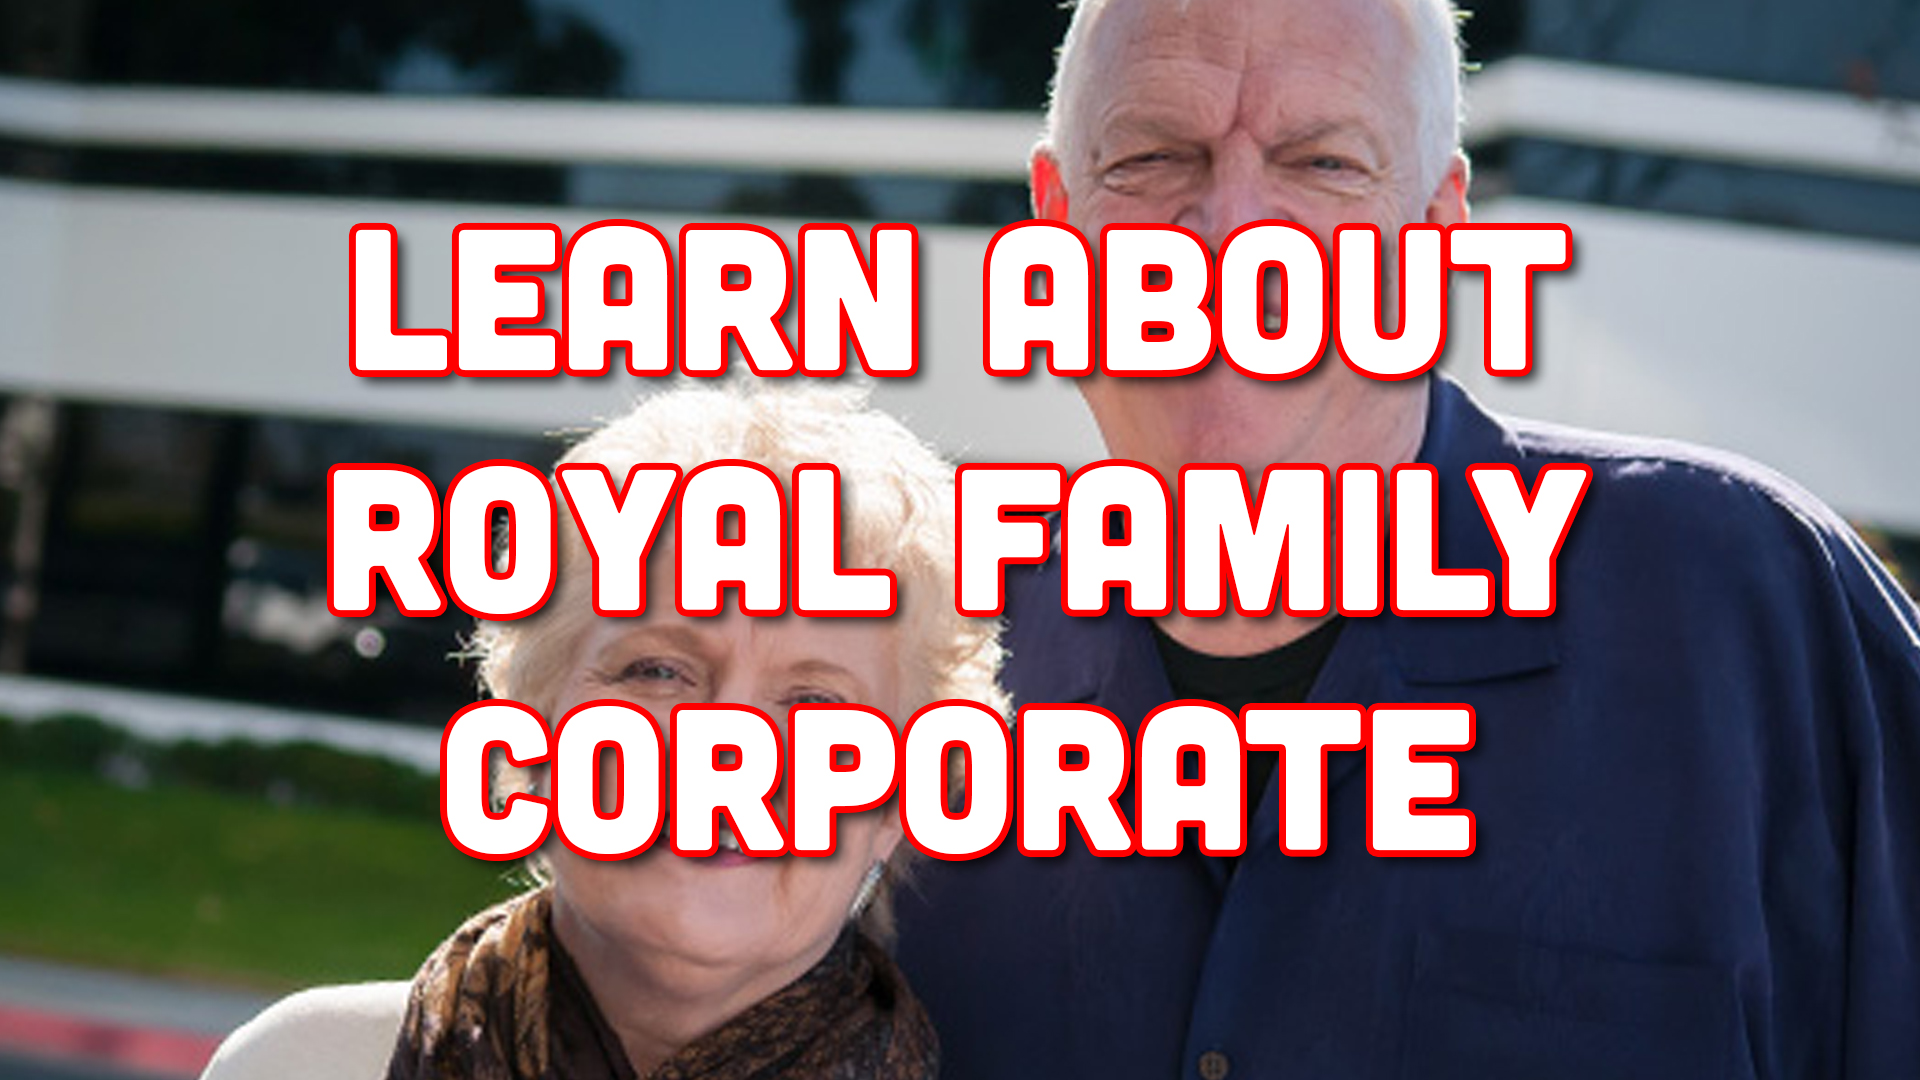 Learn About Royal Family Corporate